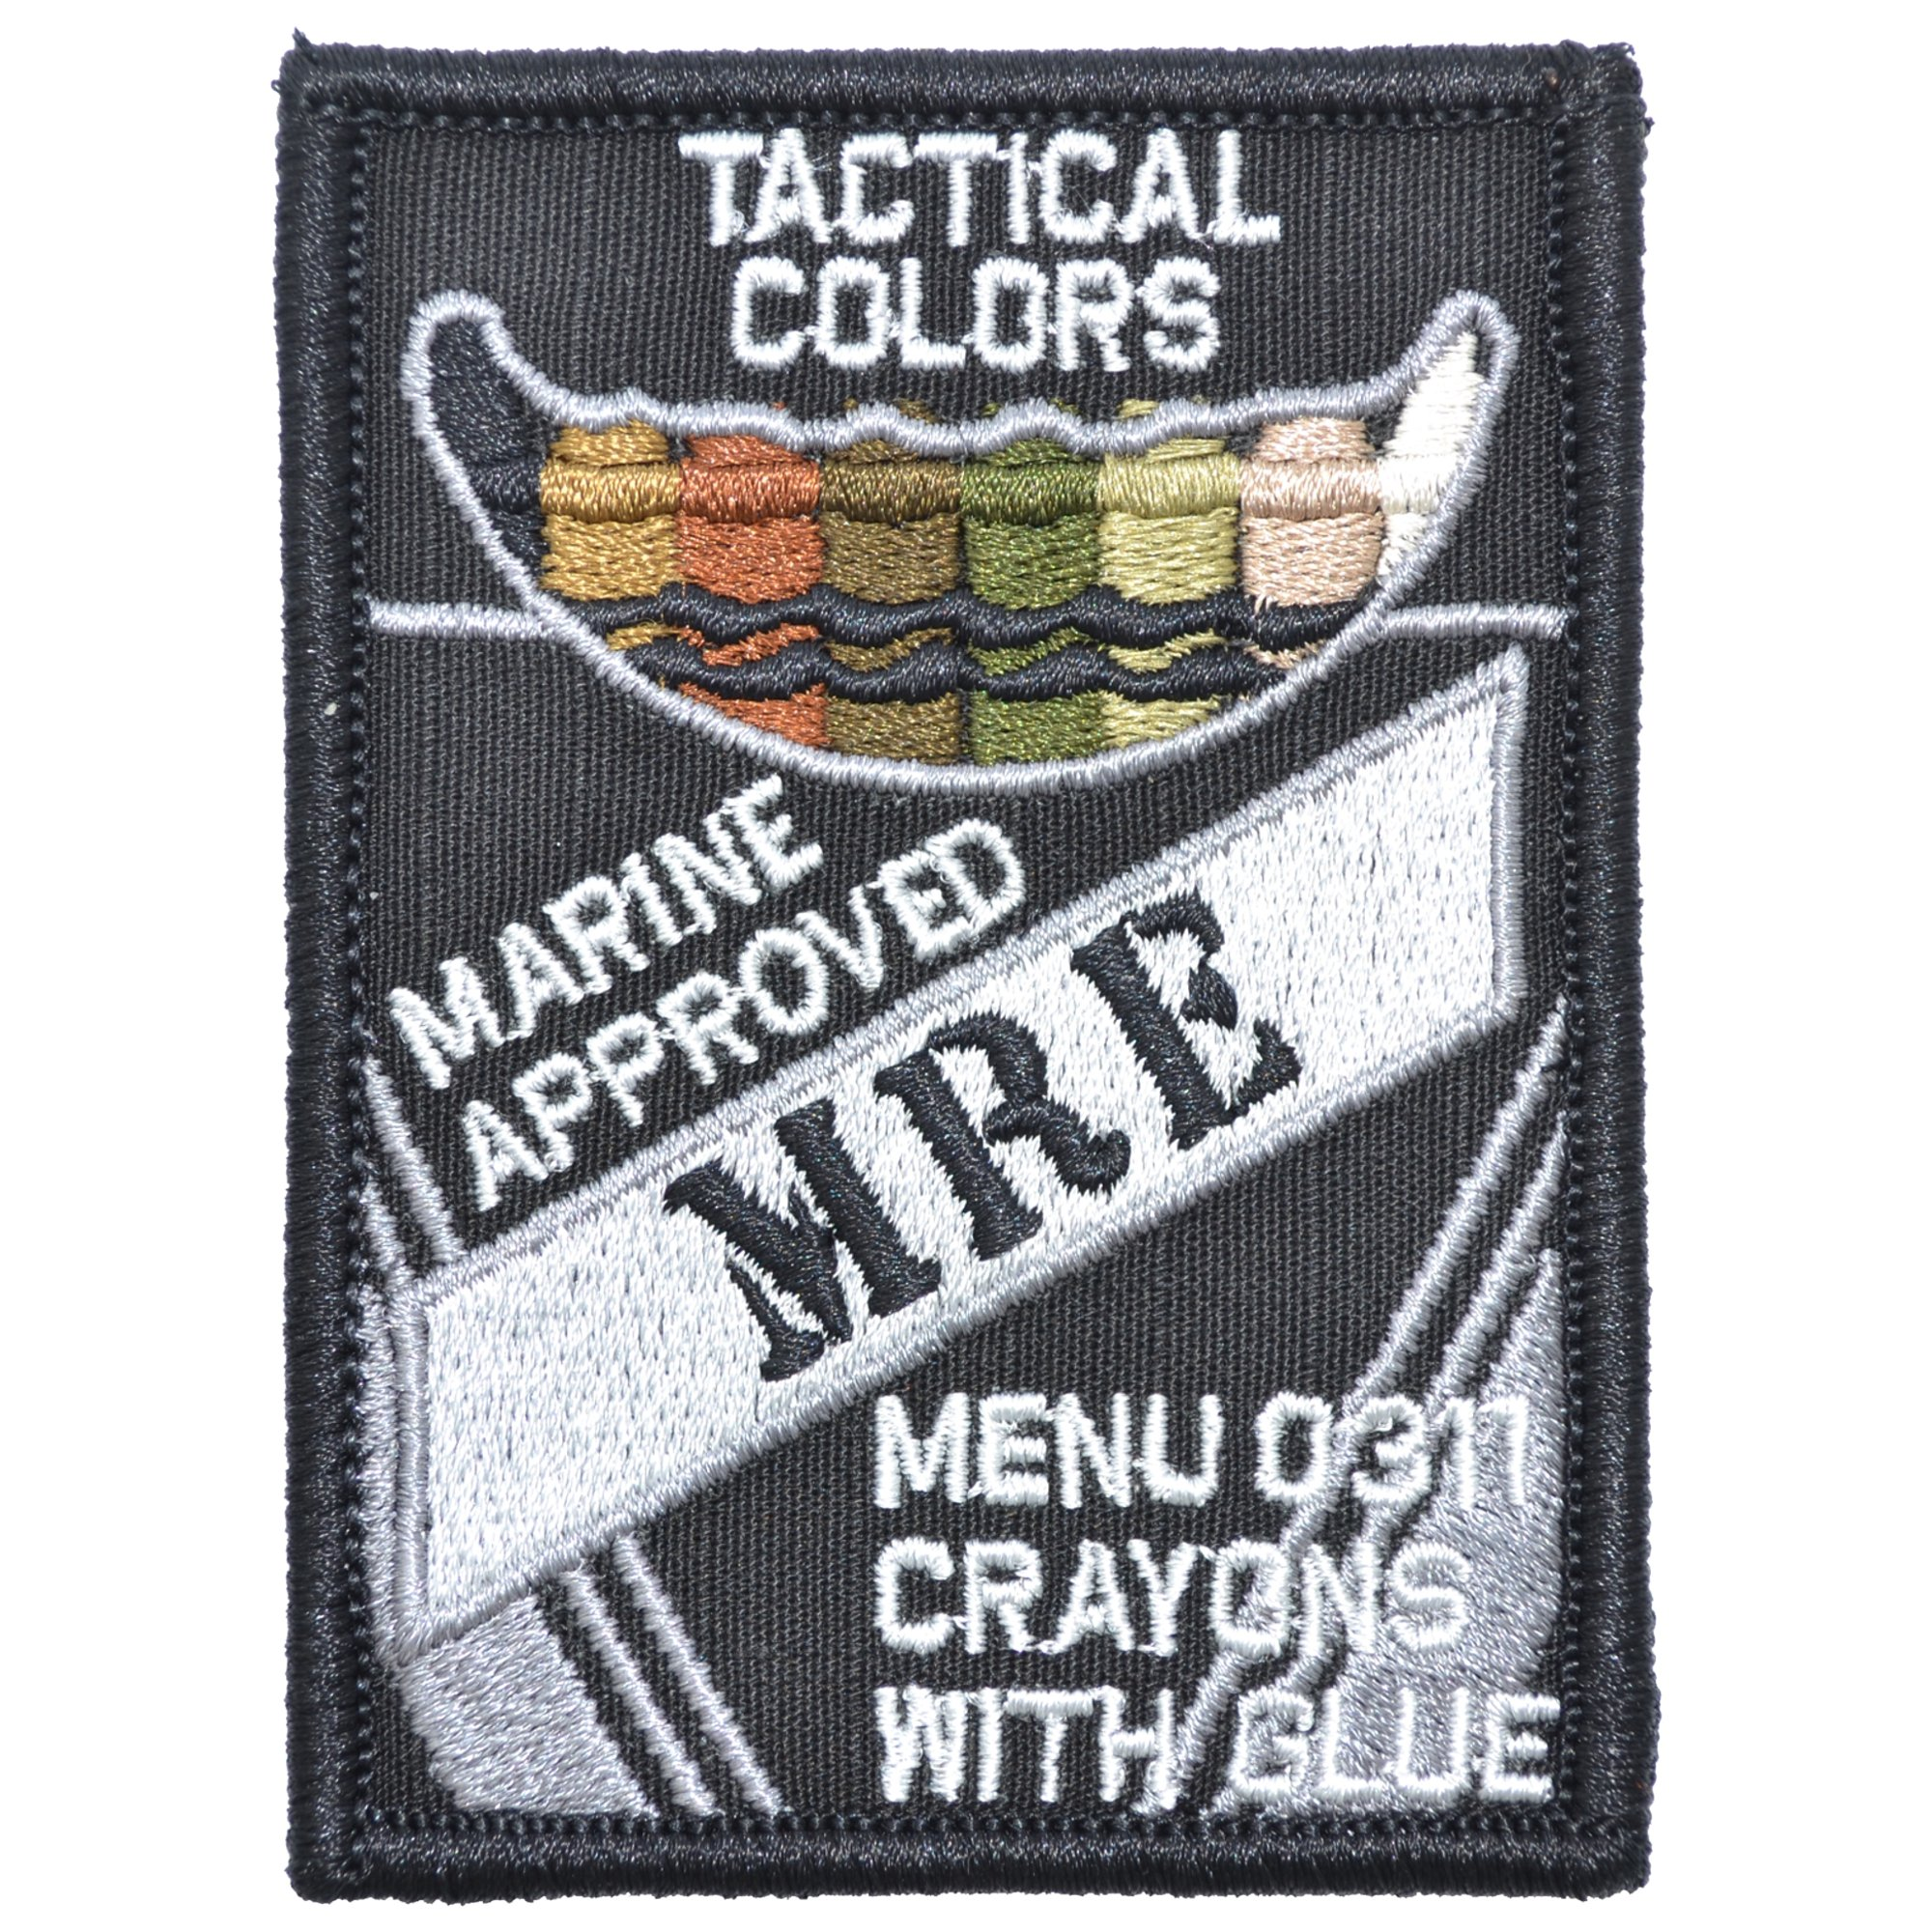 Tactical Color Crayons Marine Approved MRE - 2.5x3.5 Patch